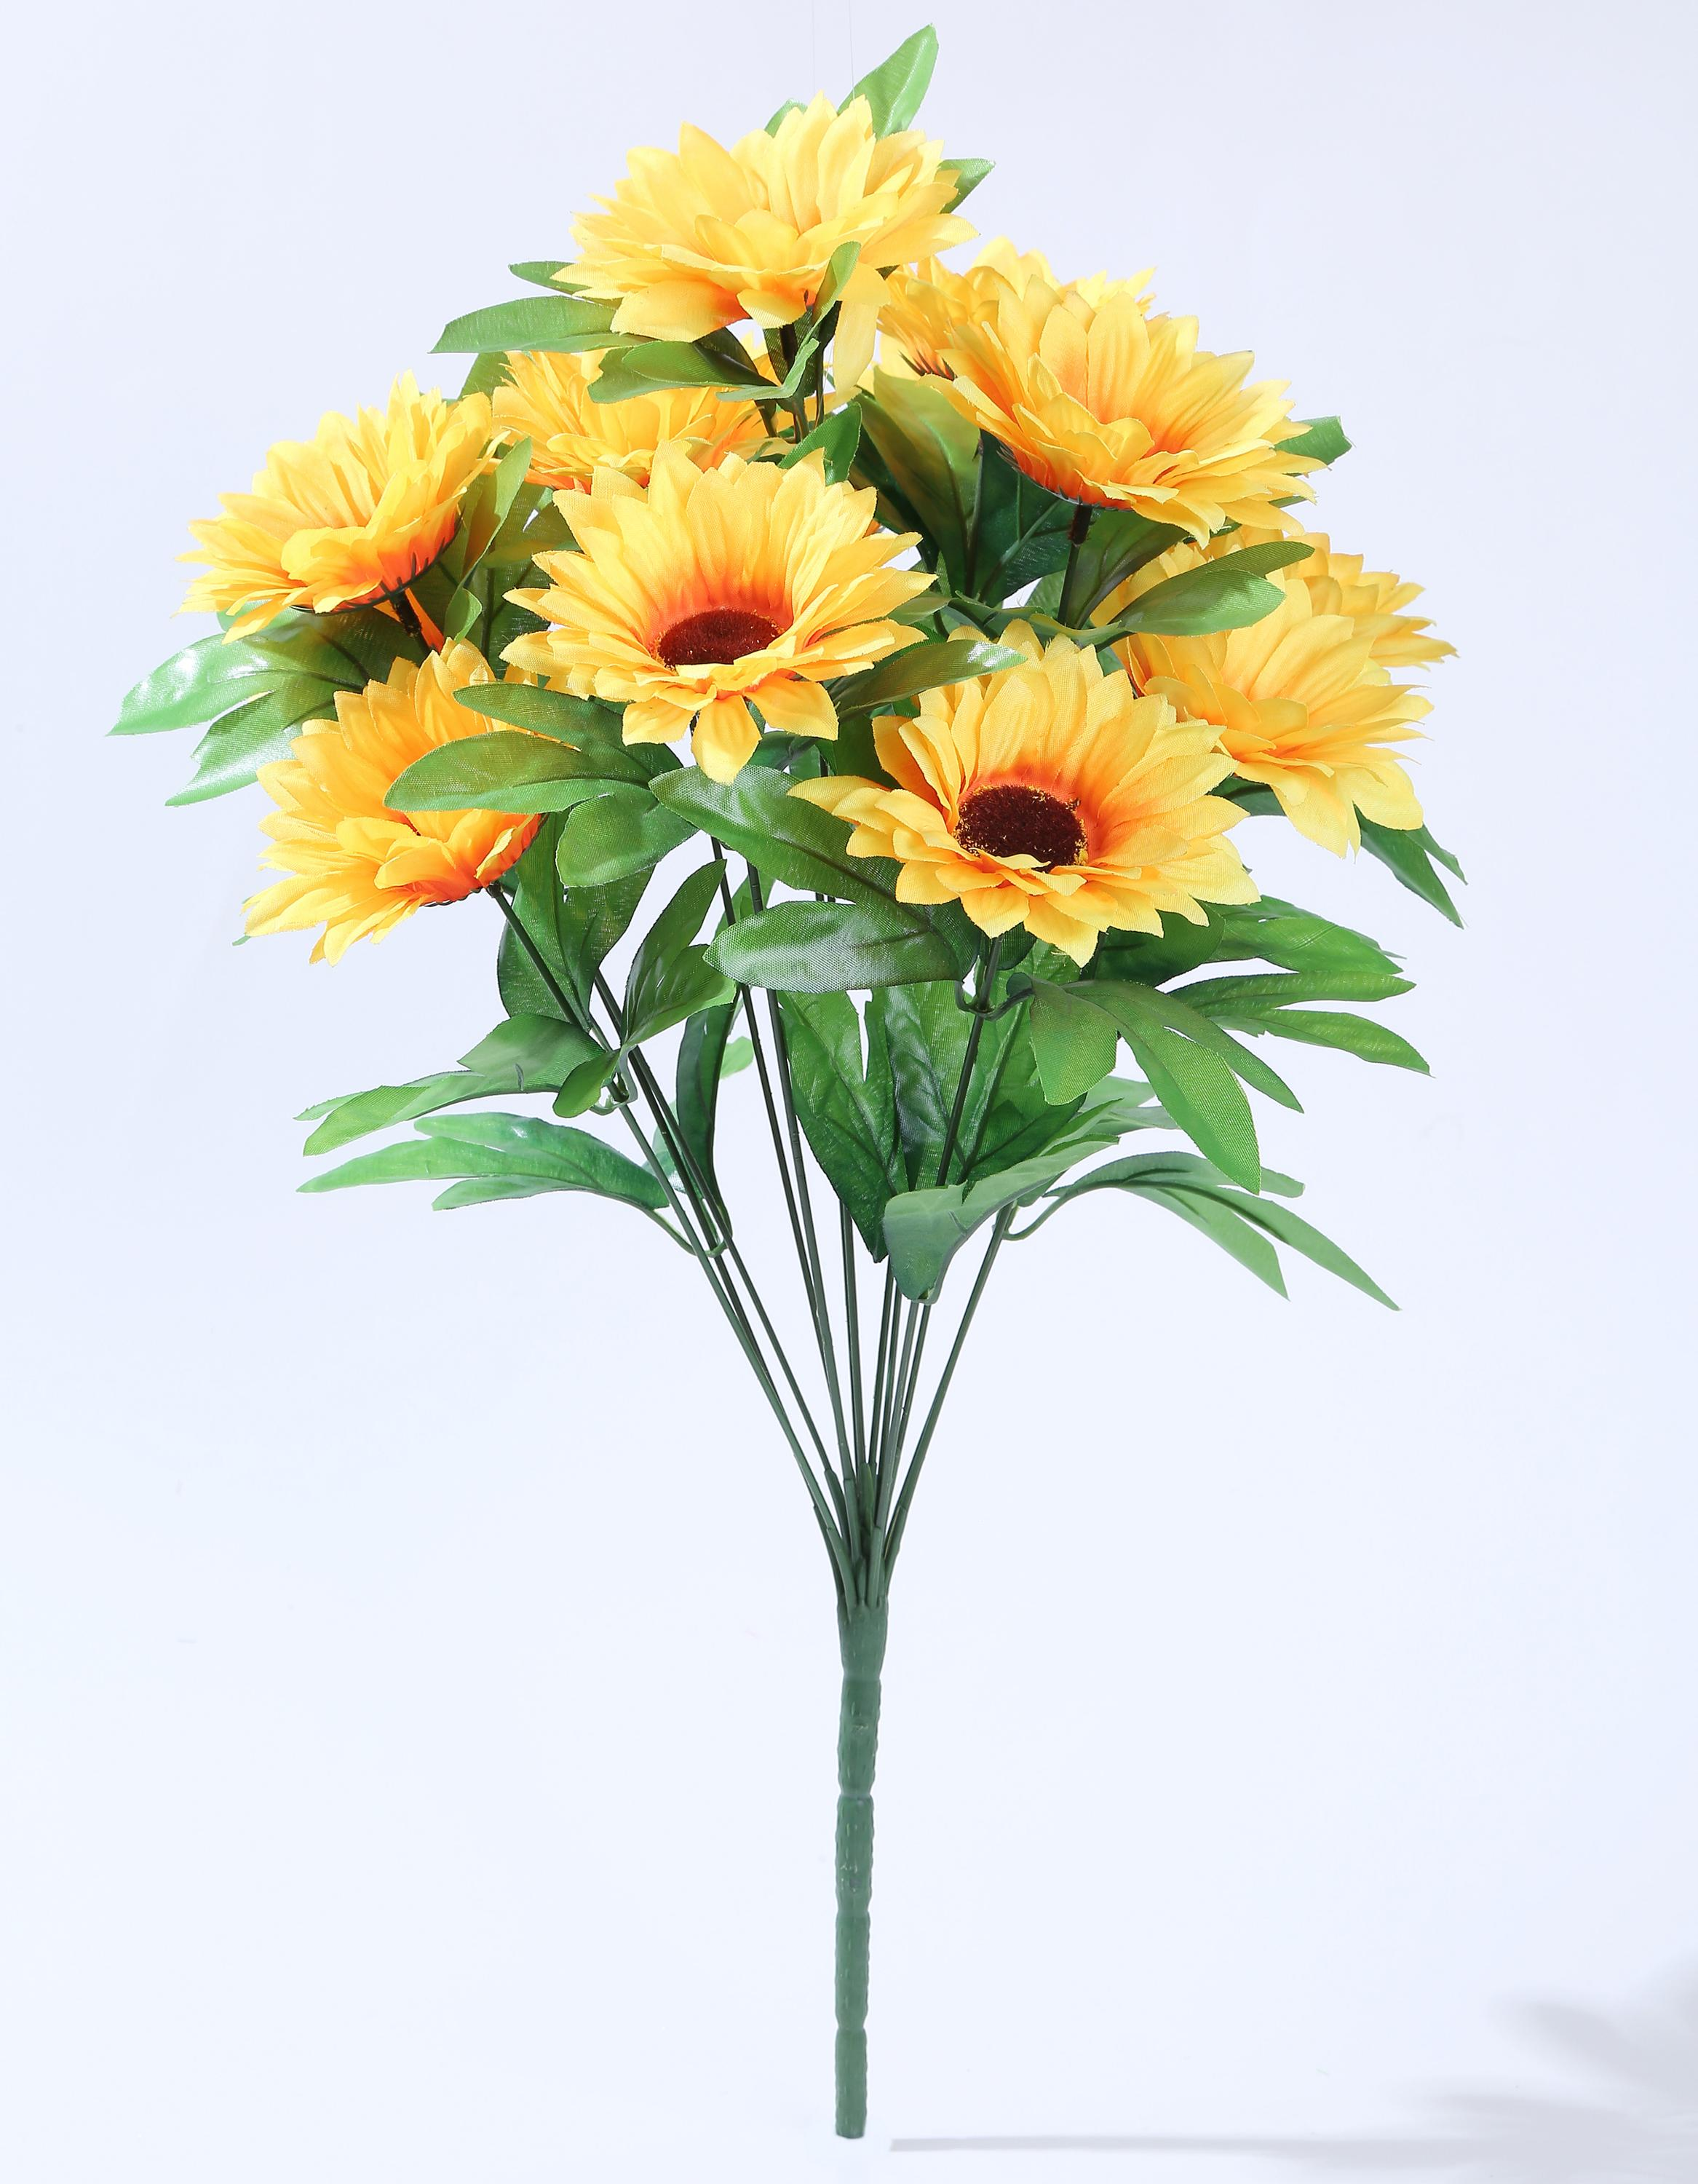 Yiwu Tonsure 13 heads artificial sunflower bush for sale YPC69-23